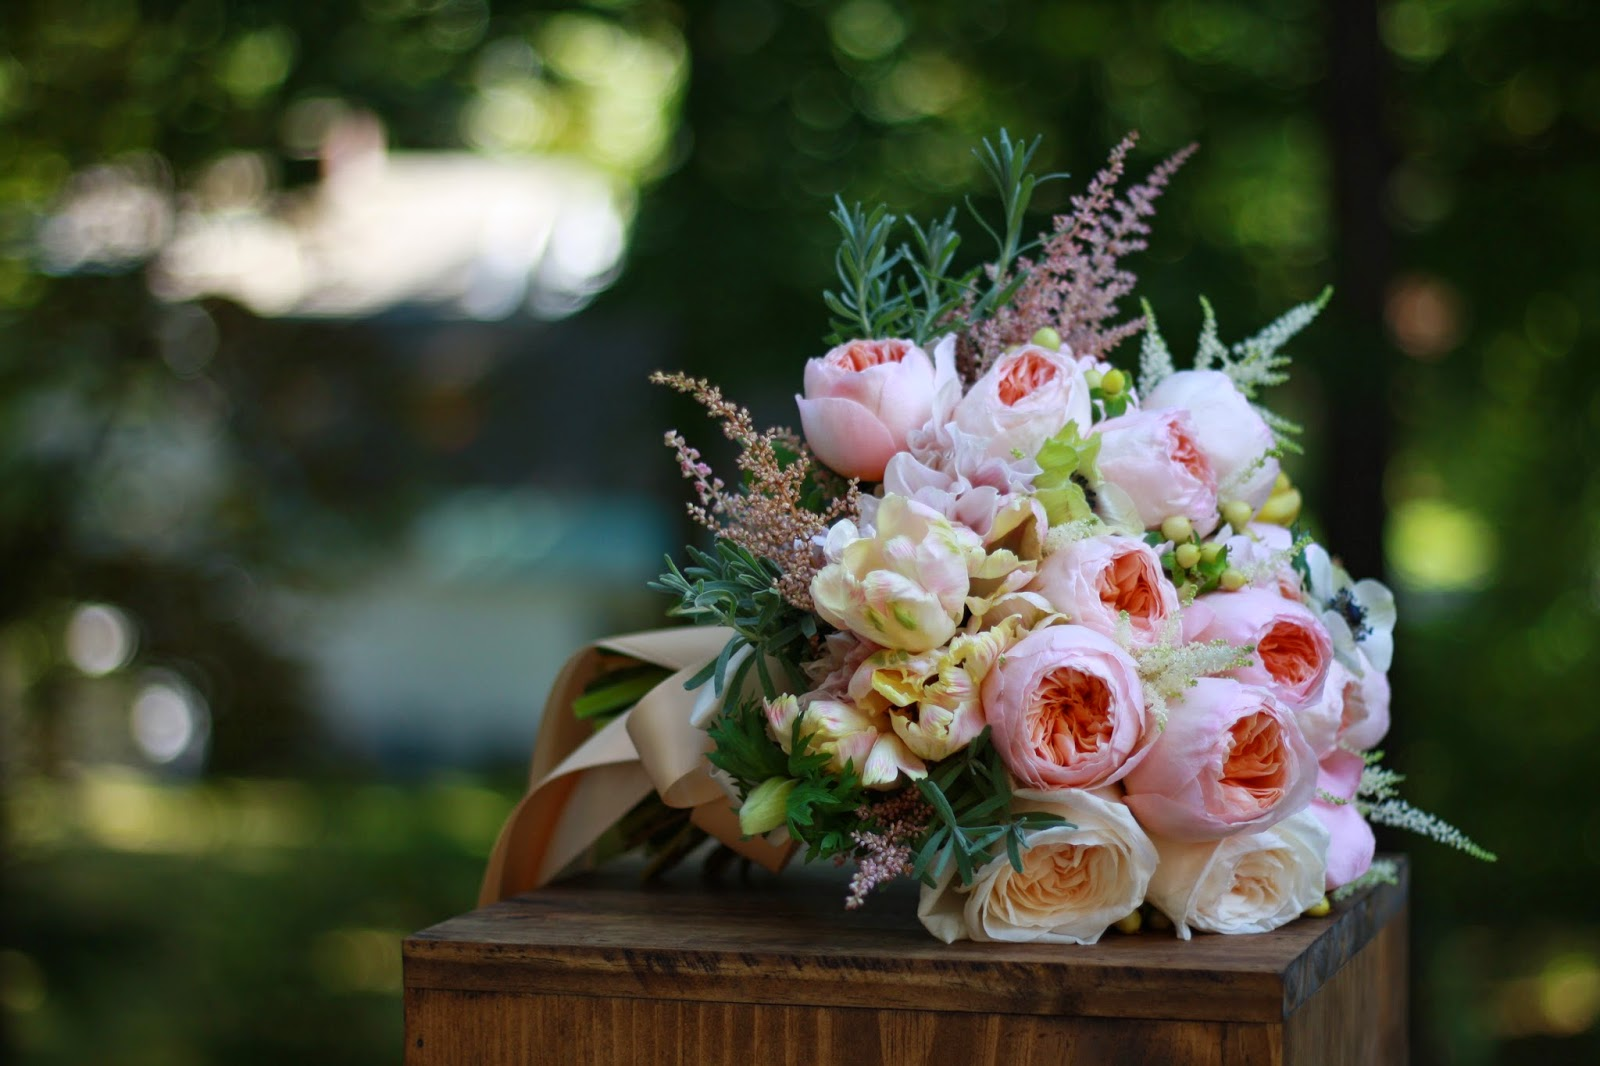 Garden Rose Bouquet - Elegant, lush and romantic hand-tied bouquet with movement composed of pale peach Juliet garden roses, blush garden roses, café au lait dahlias, anemones, pale pink astilbe, cream hypericum berry, white hydrangea -  Wedding Bouquet - Splendid Stems Wedding Flowers - Wedding Florist